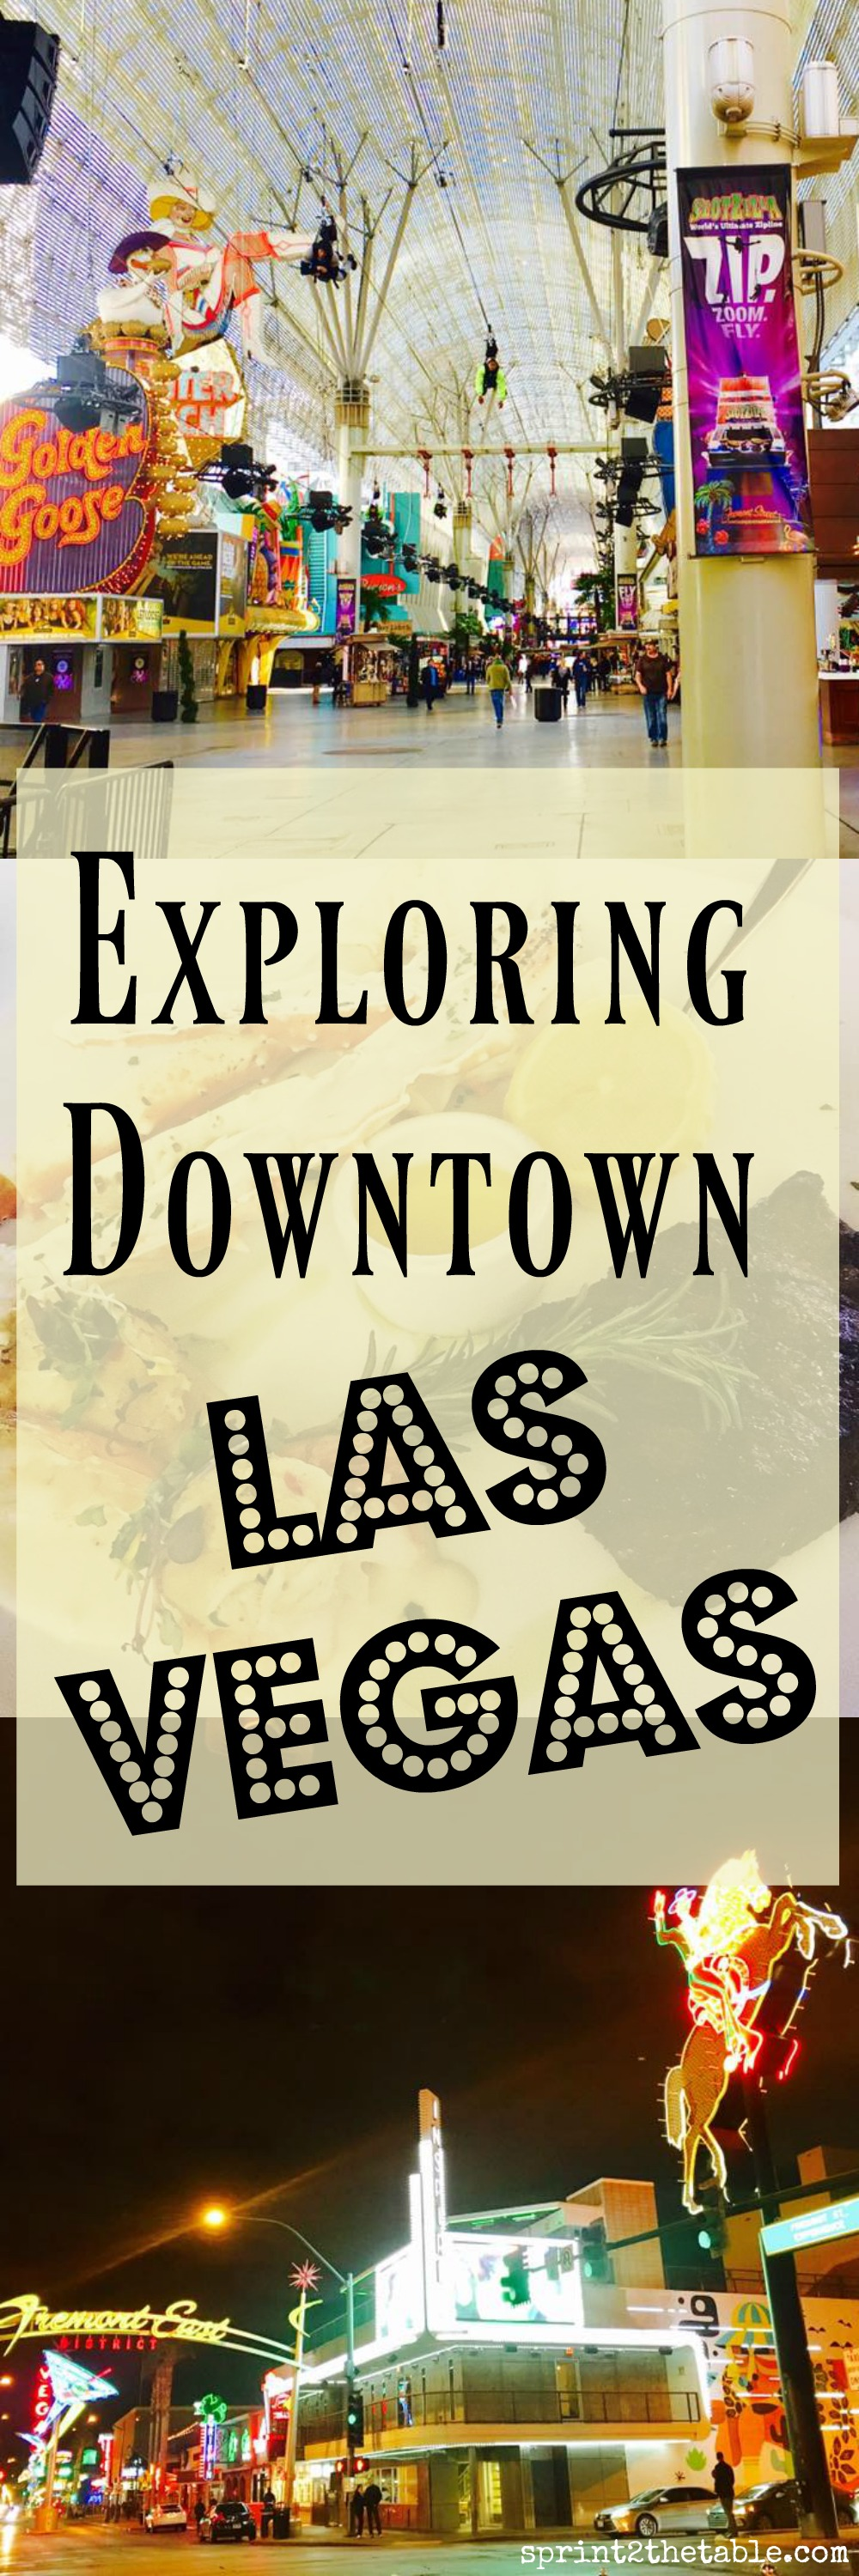 Exploring Downtown Las Vegas - don't miss this classic part of Vegas!